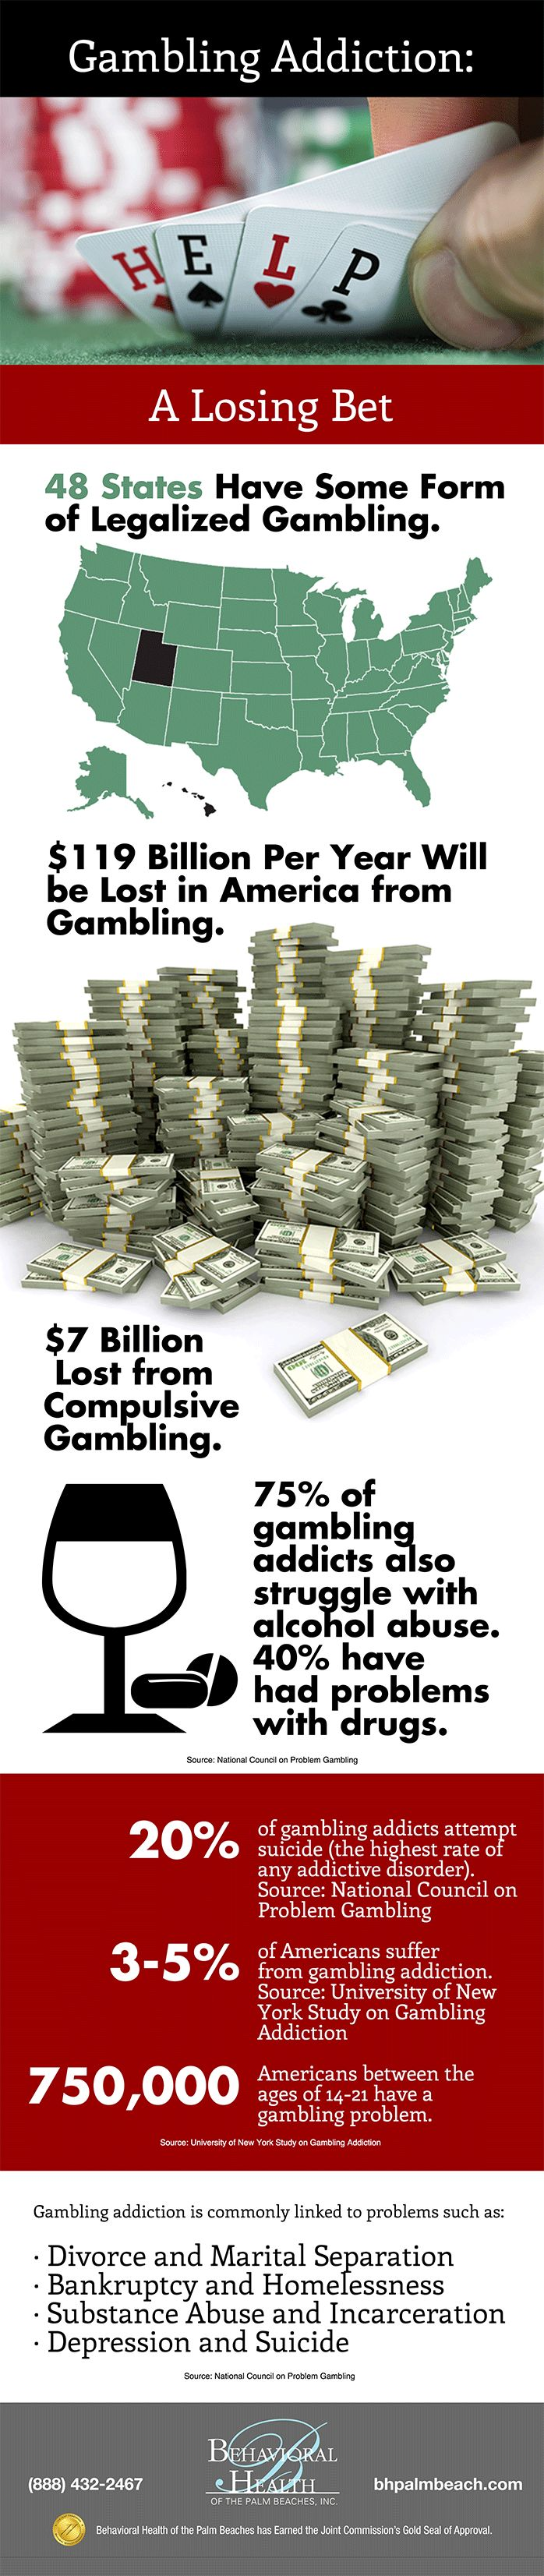 Gambling addiction can be seen everywhere. This is showing that 119 billion a year in the U.S. is lost on gambling and 7 billion of that is from compulsive gambling.